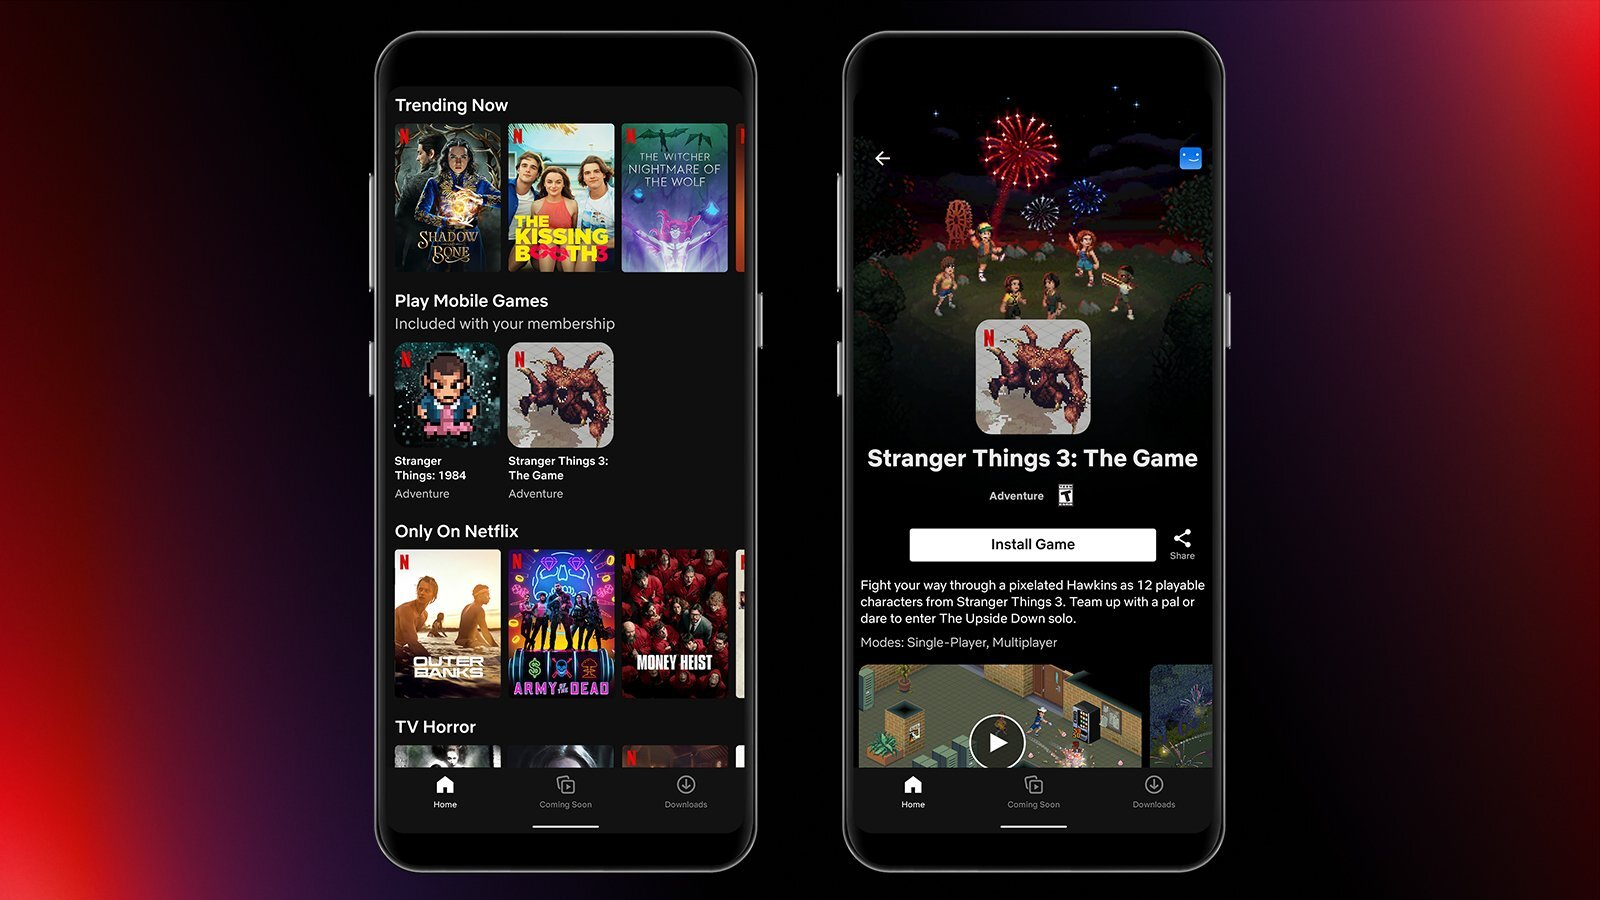 A mock-up of Netflix's games interface showing off Stranger Things 3 and Stranger Things: 1984 in a row beneath streaming shows.